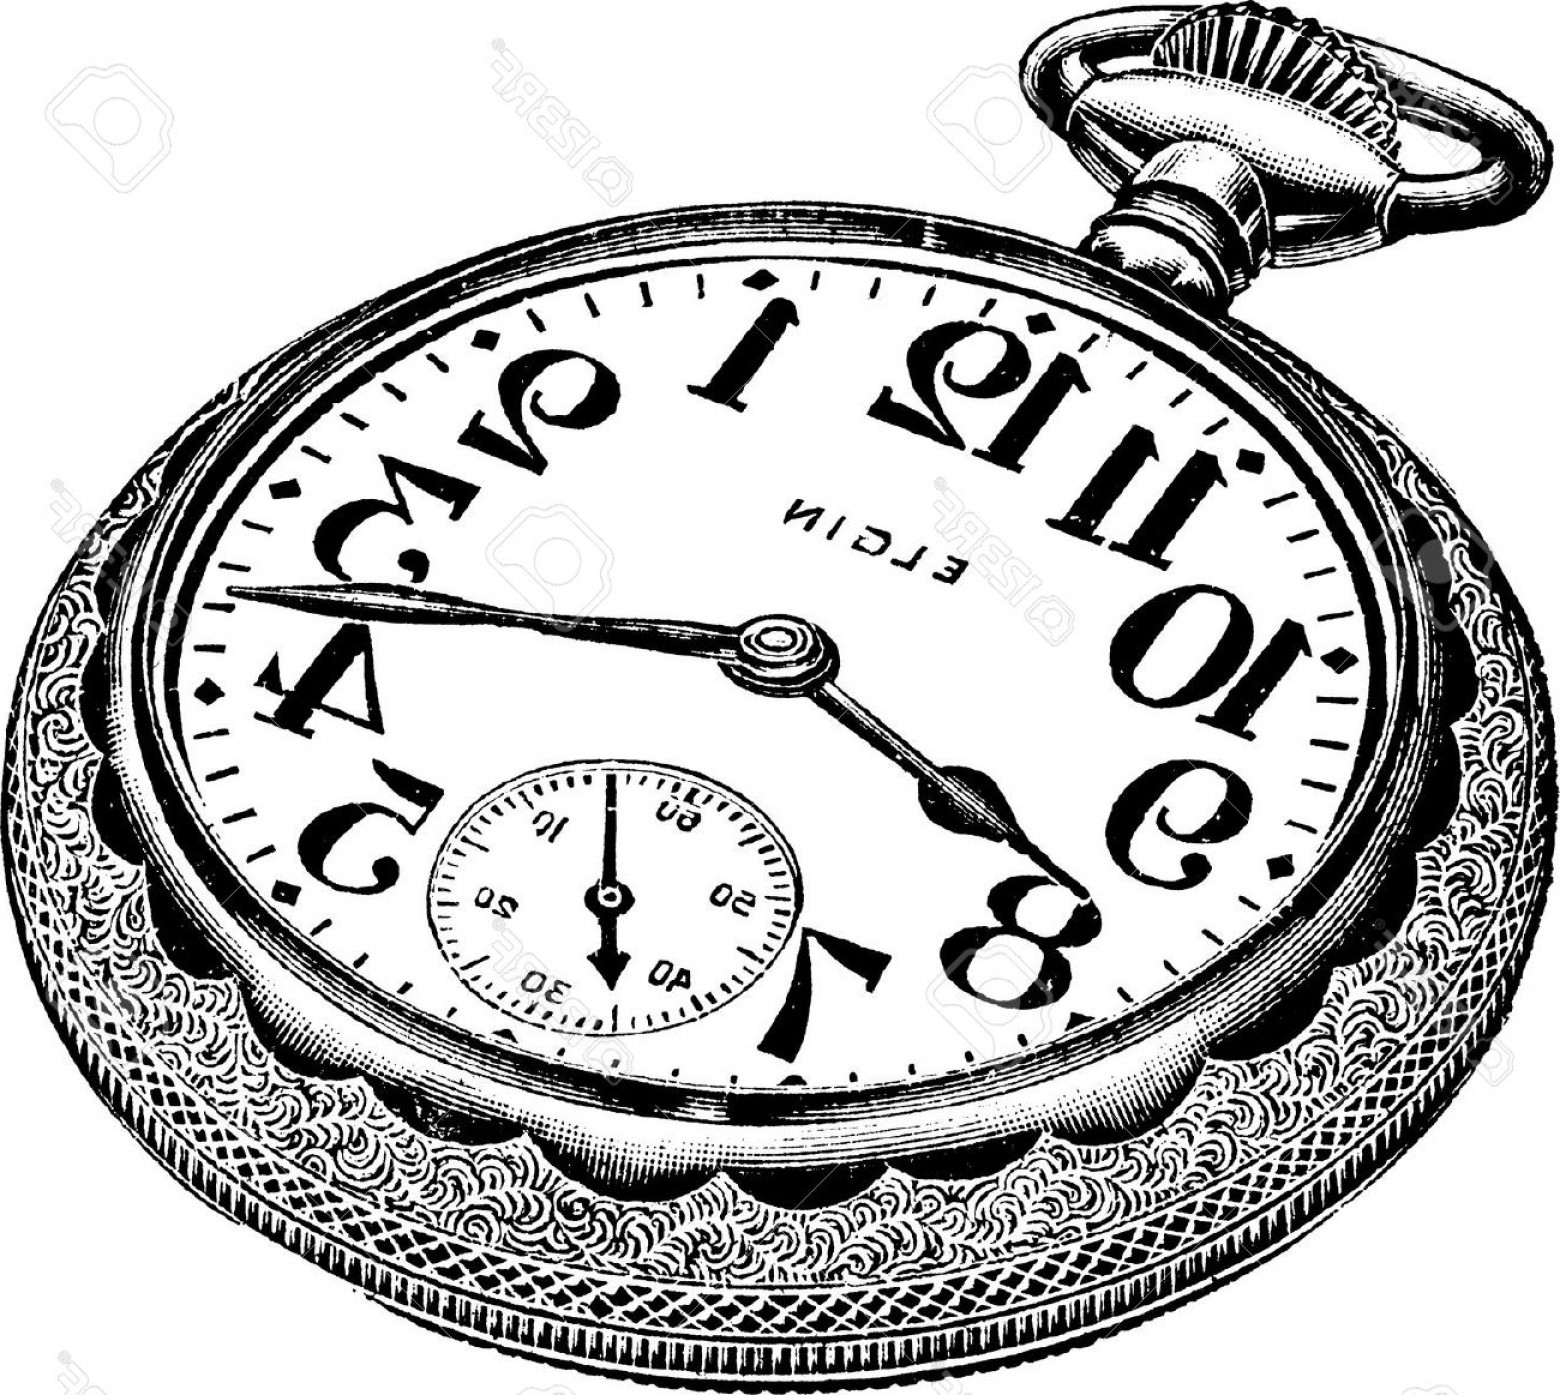 Pocket Watch Drawings: The Best Free Pocket Watch Drawing Images. Download From